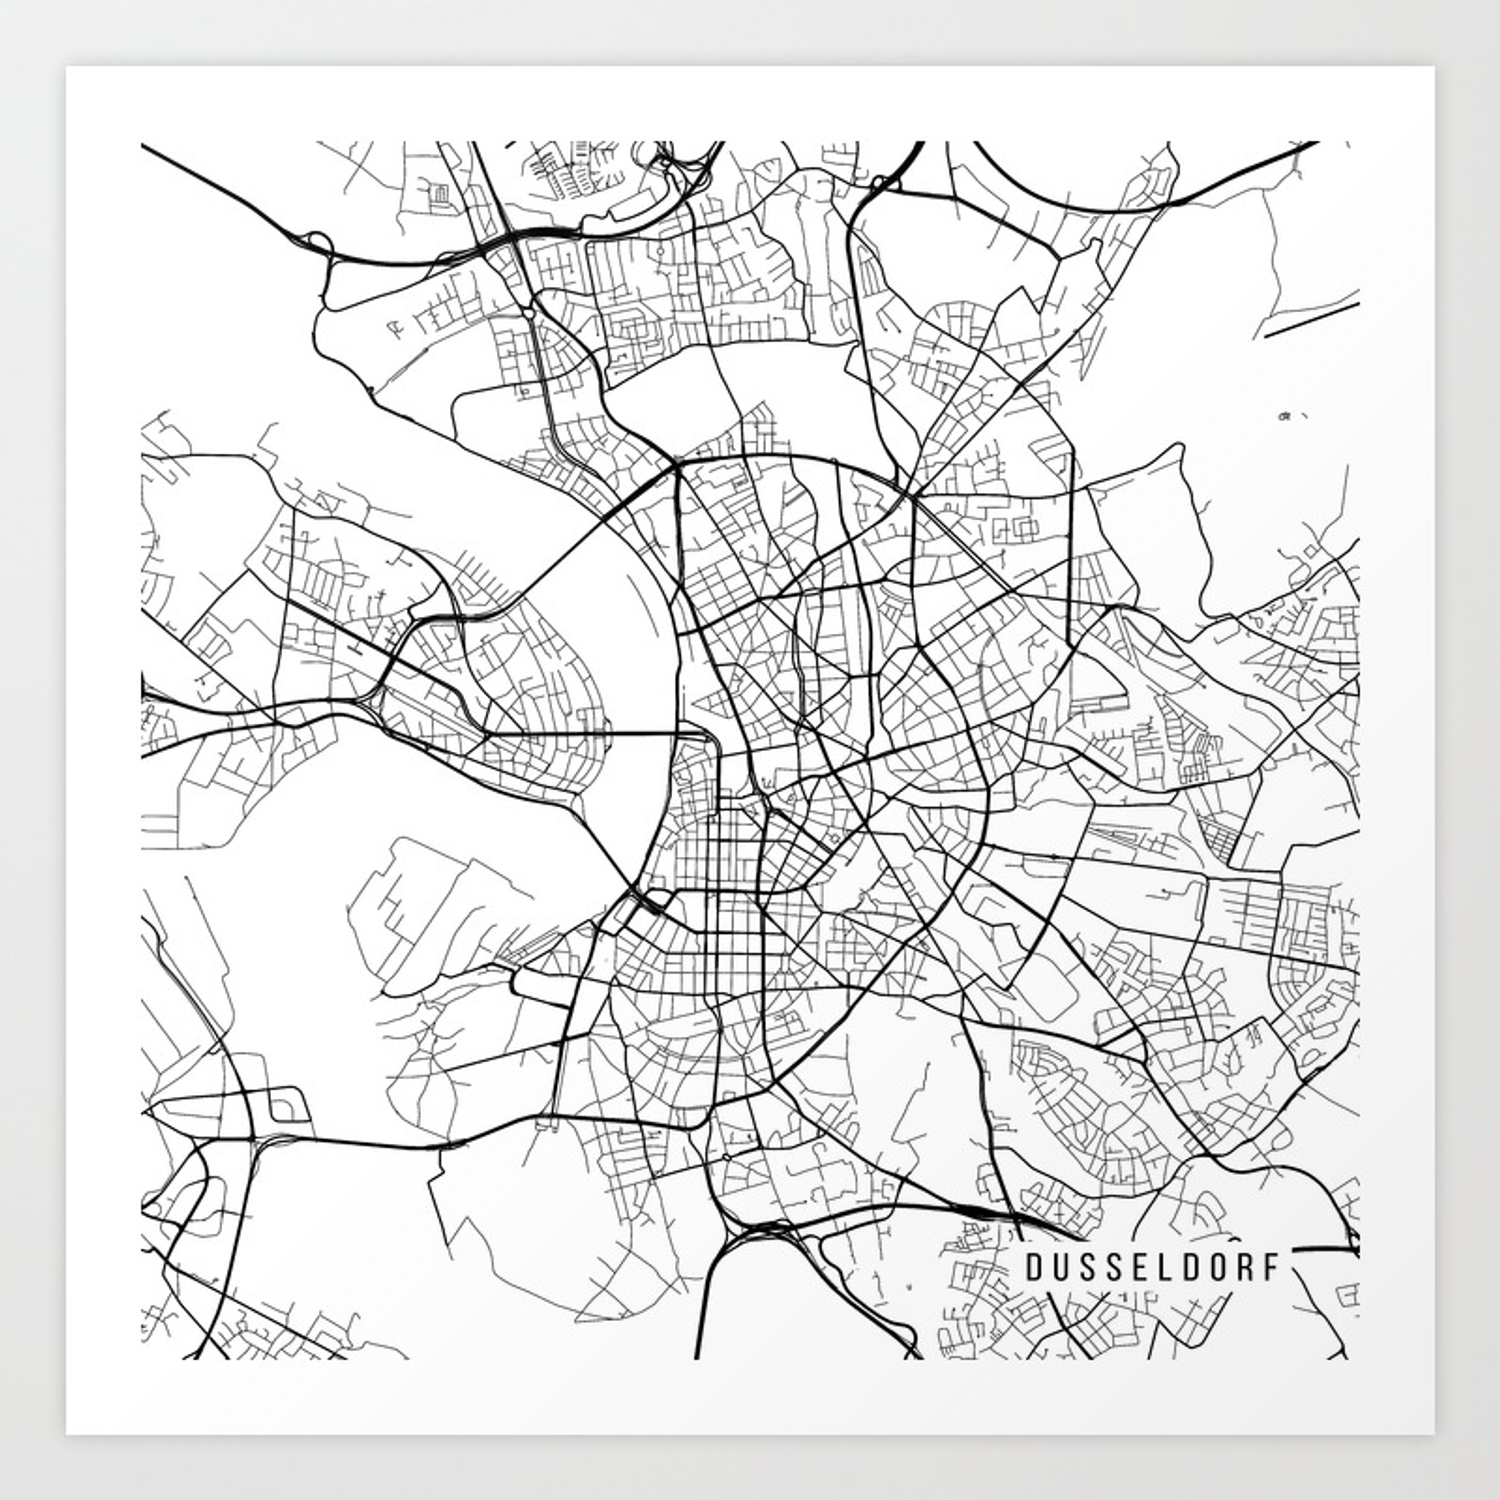 Dusseldorf Map, Germany - Black and White Art Print on prague czech republic on map, hannover germany map, mayence germany map, dresden germany map, blankenheim germany map, erfurt germany map, bremen germany map, geilenkirchen germany map, rome germany map, donaueschingen germany map, belfast germany map, cologne germany map, berlin germany map, split germany map, duisburg map, saxony germany map, krefeld germany map, stuttgart germany map, bonn germany map, hamburg germany map,